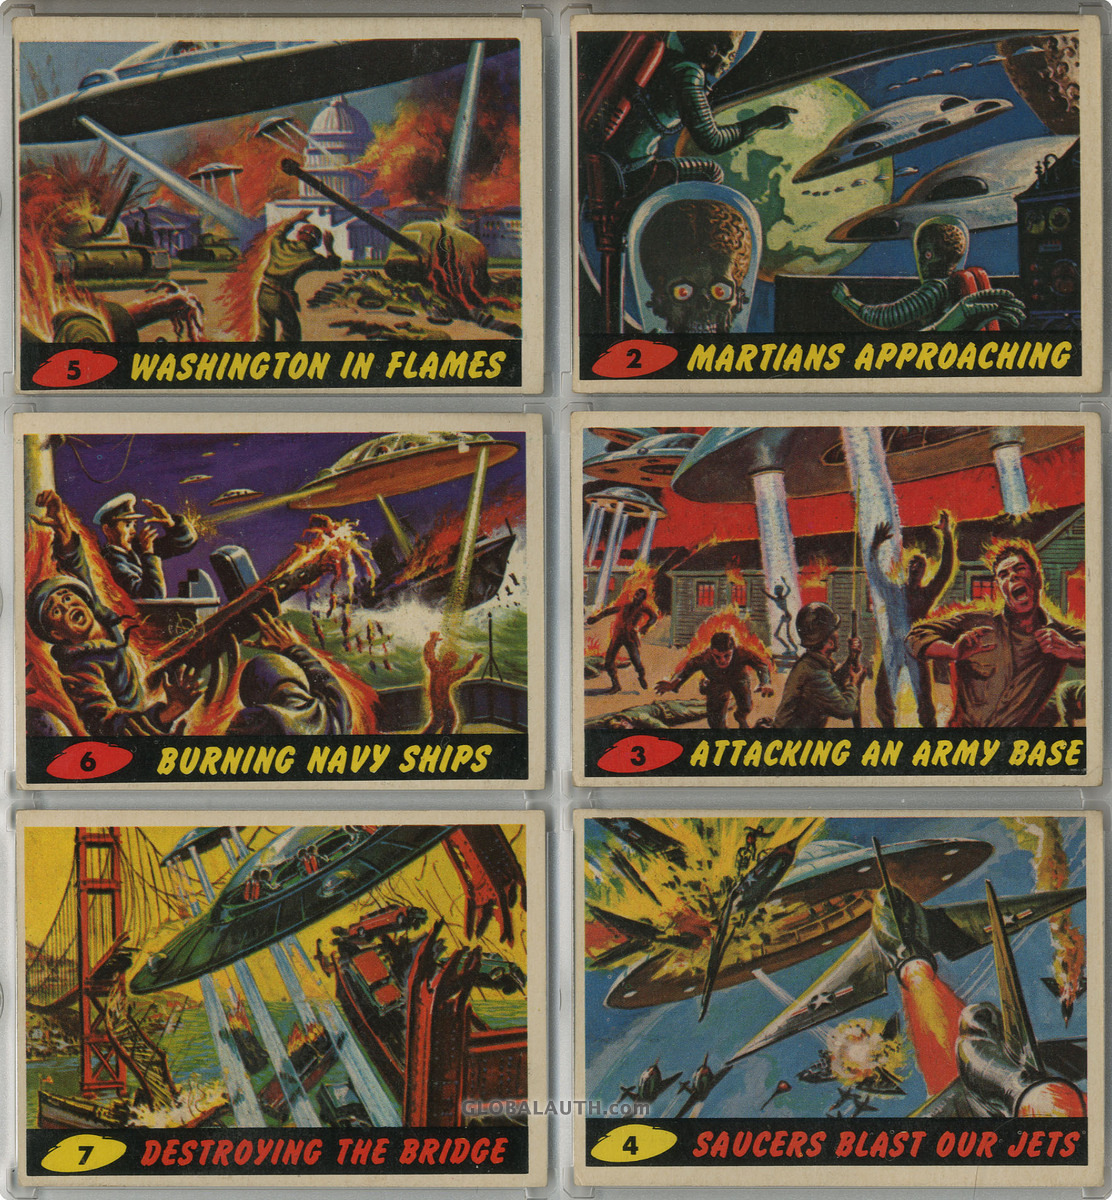 1962-mars-attacks-non-sports-card-set-set-images.jpg, #0